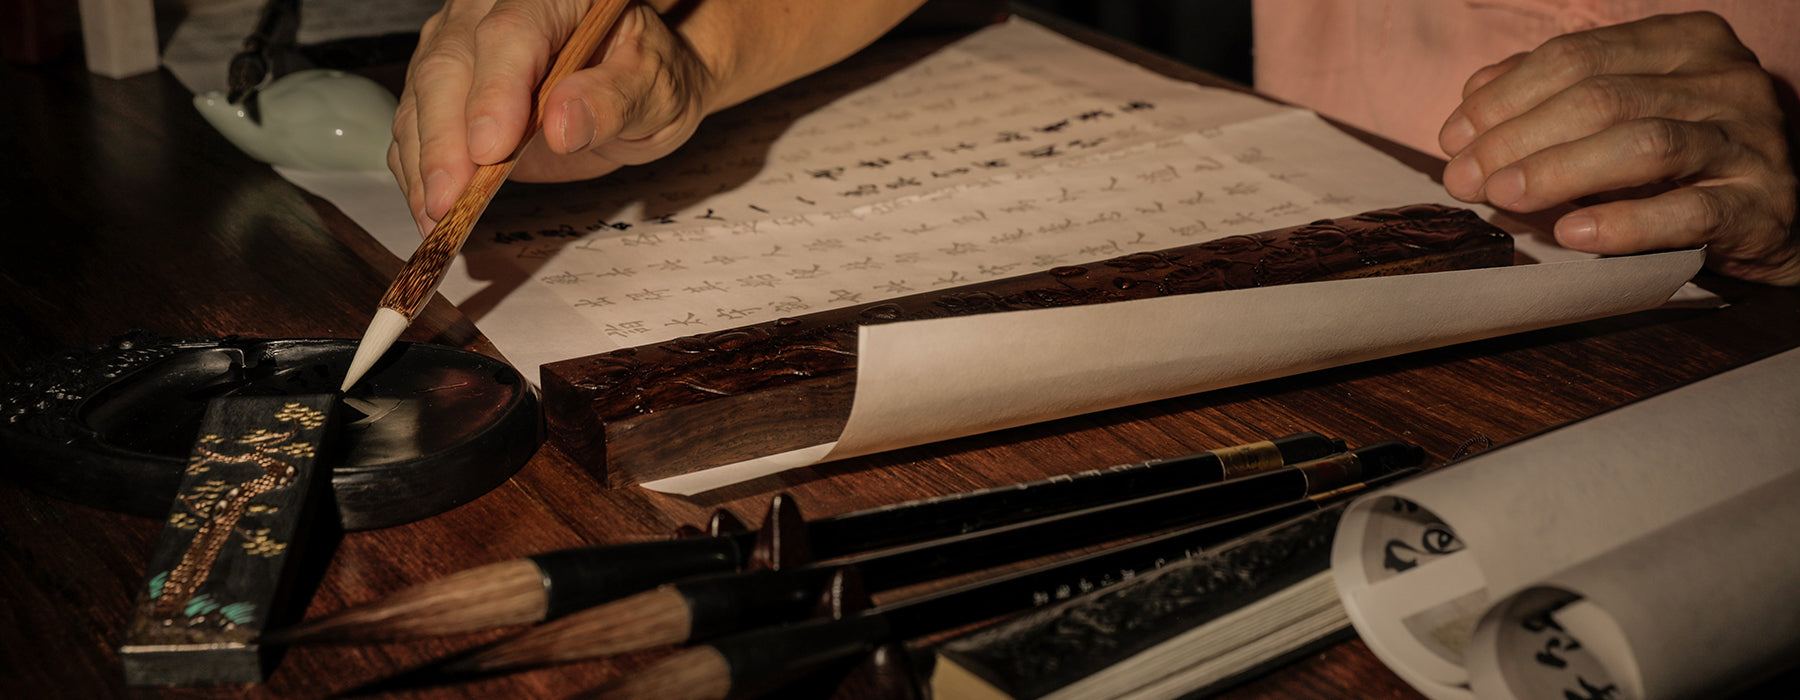 Chinese Calligraphy Artist practicing writing Chinese characters with a Chinese Brush and using the 4 Treasures of the Study